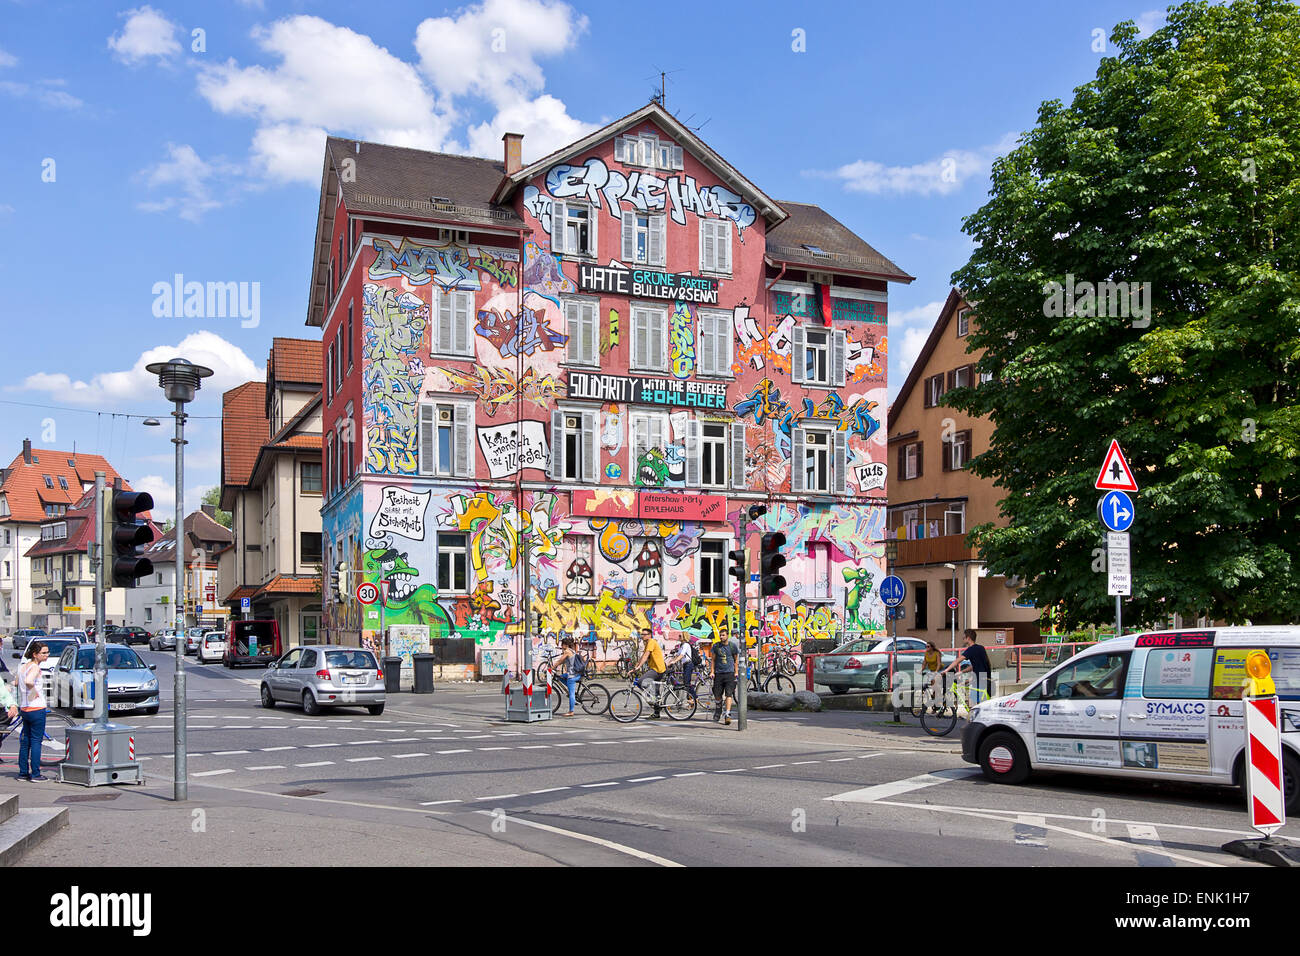 das kurzfristig haus in t bingen deutschland stockfoto bild 82167603 alamy. Black Bedroom Furniture Sets. Home Design Ideas